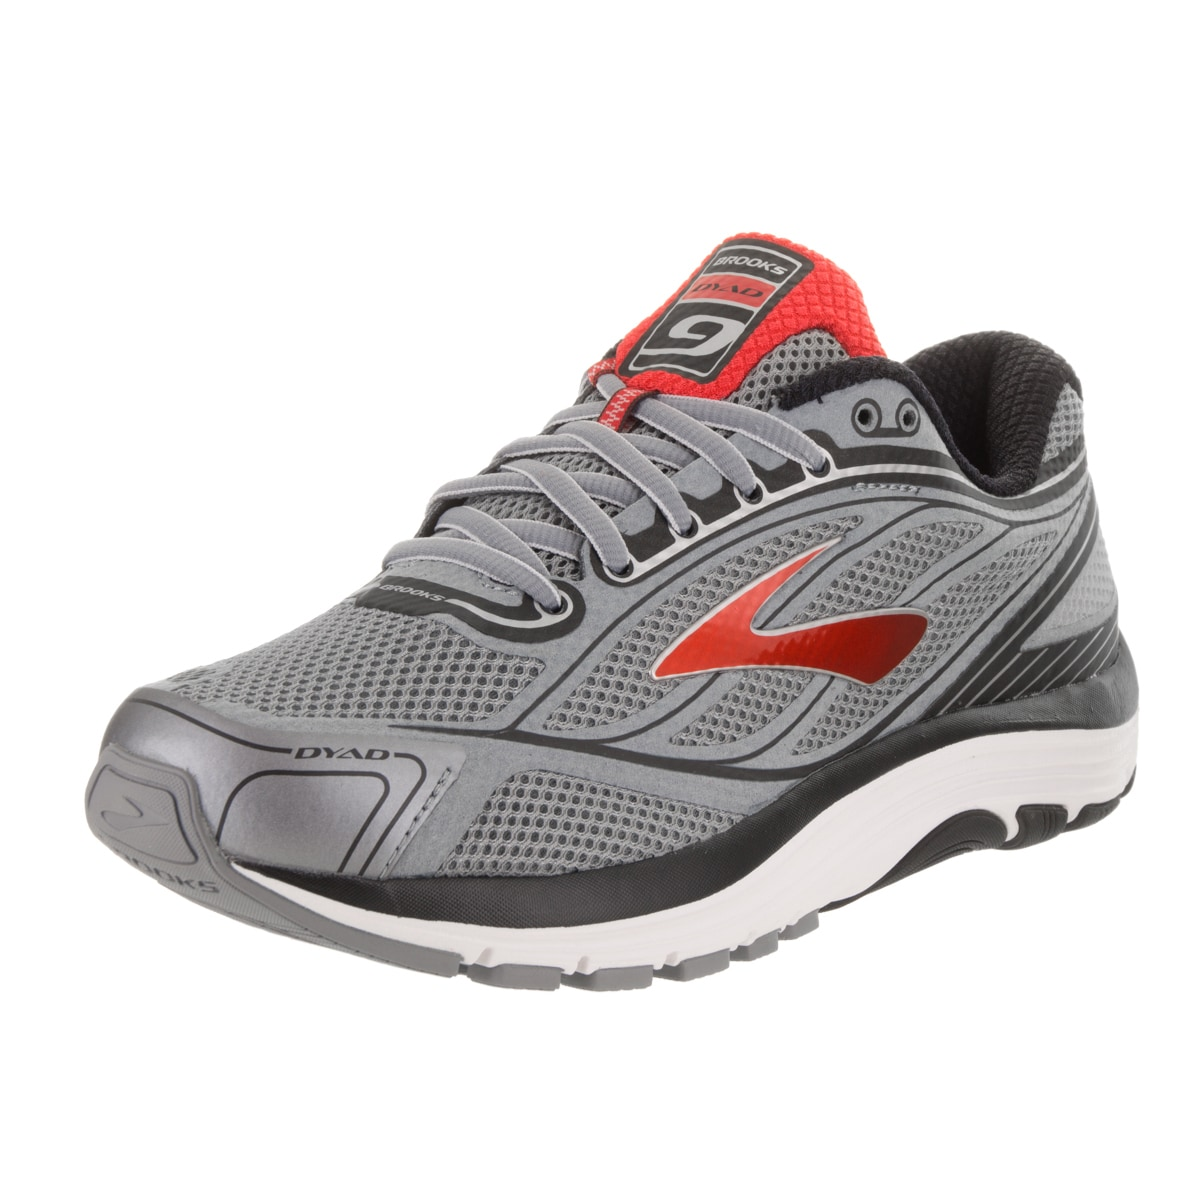 a9a0facf6b2 Shop Brooks Men s Dyad 9 Grey Synthetic-leather Running Shoes - Free  Shipping Today - Overstock - 14746874